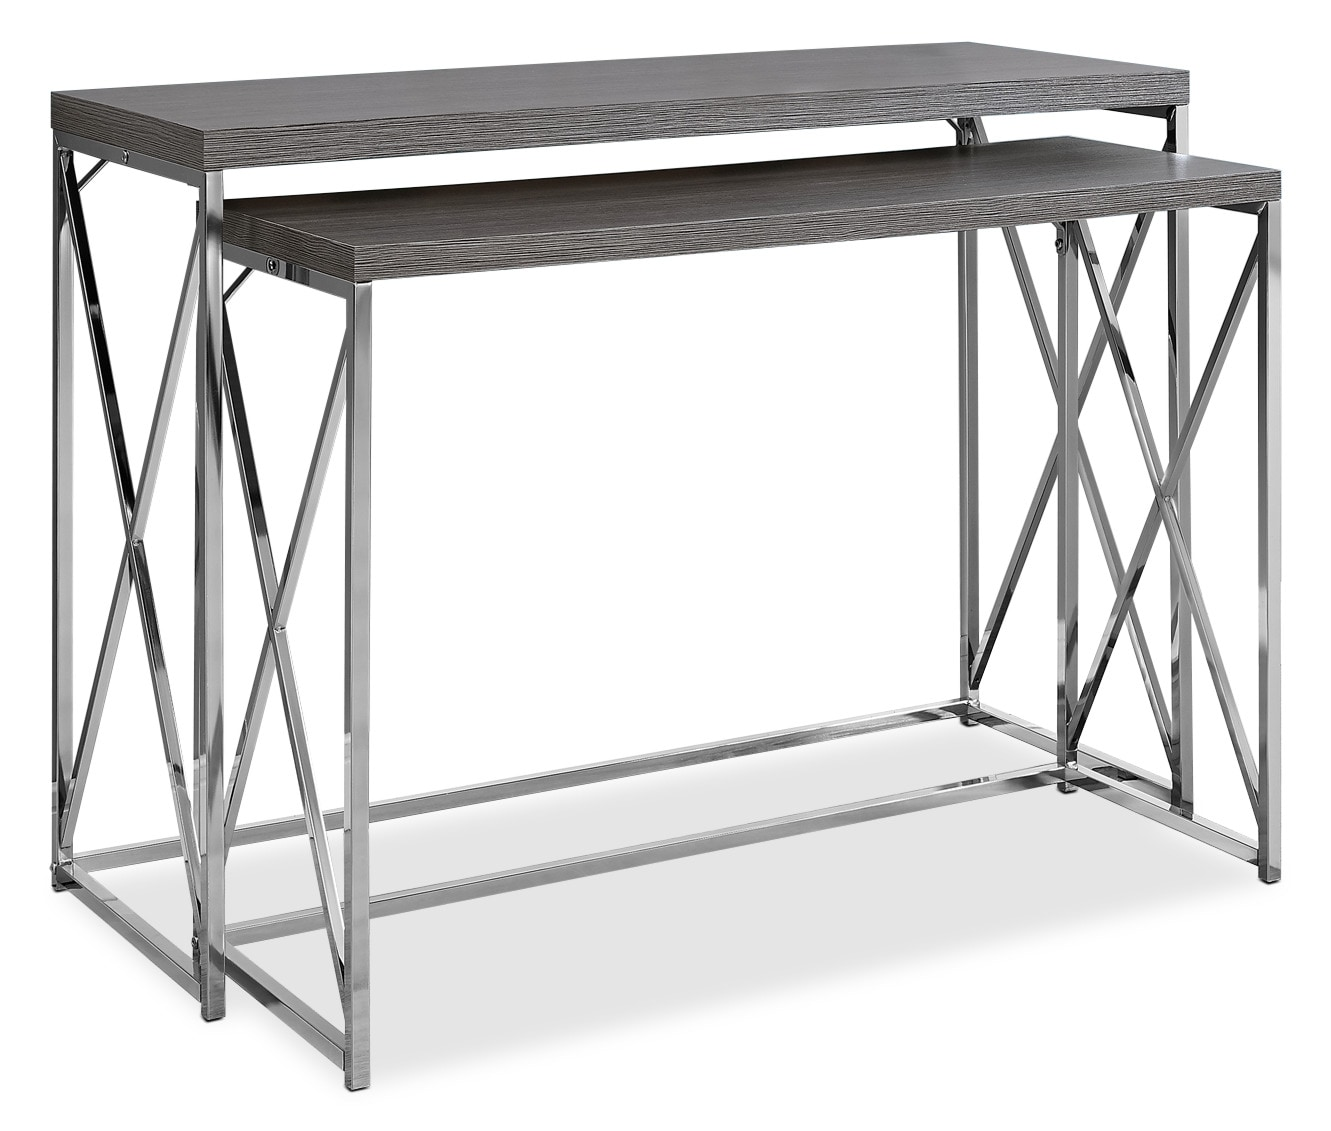 Online Only - Stark 2-Piece Sofa Table - Wood-Grain Grey